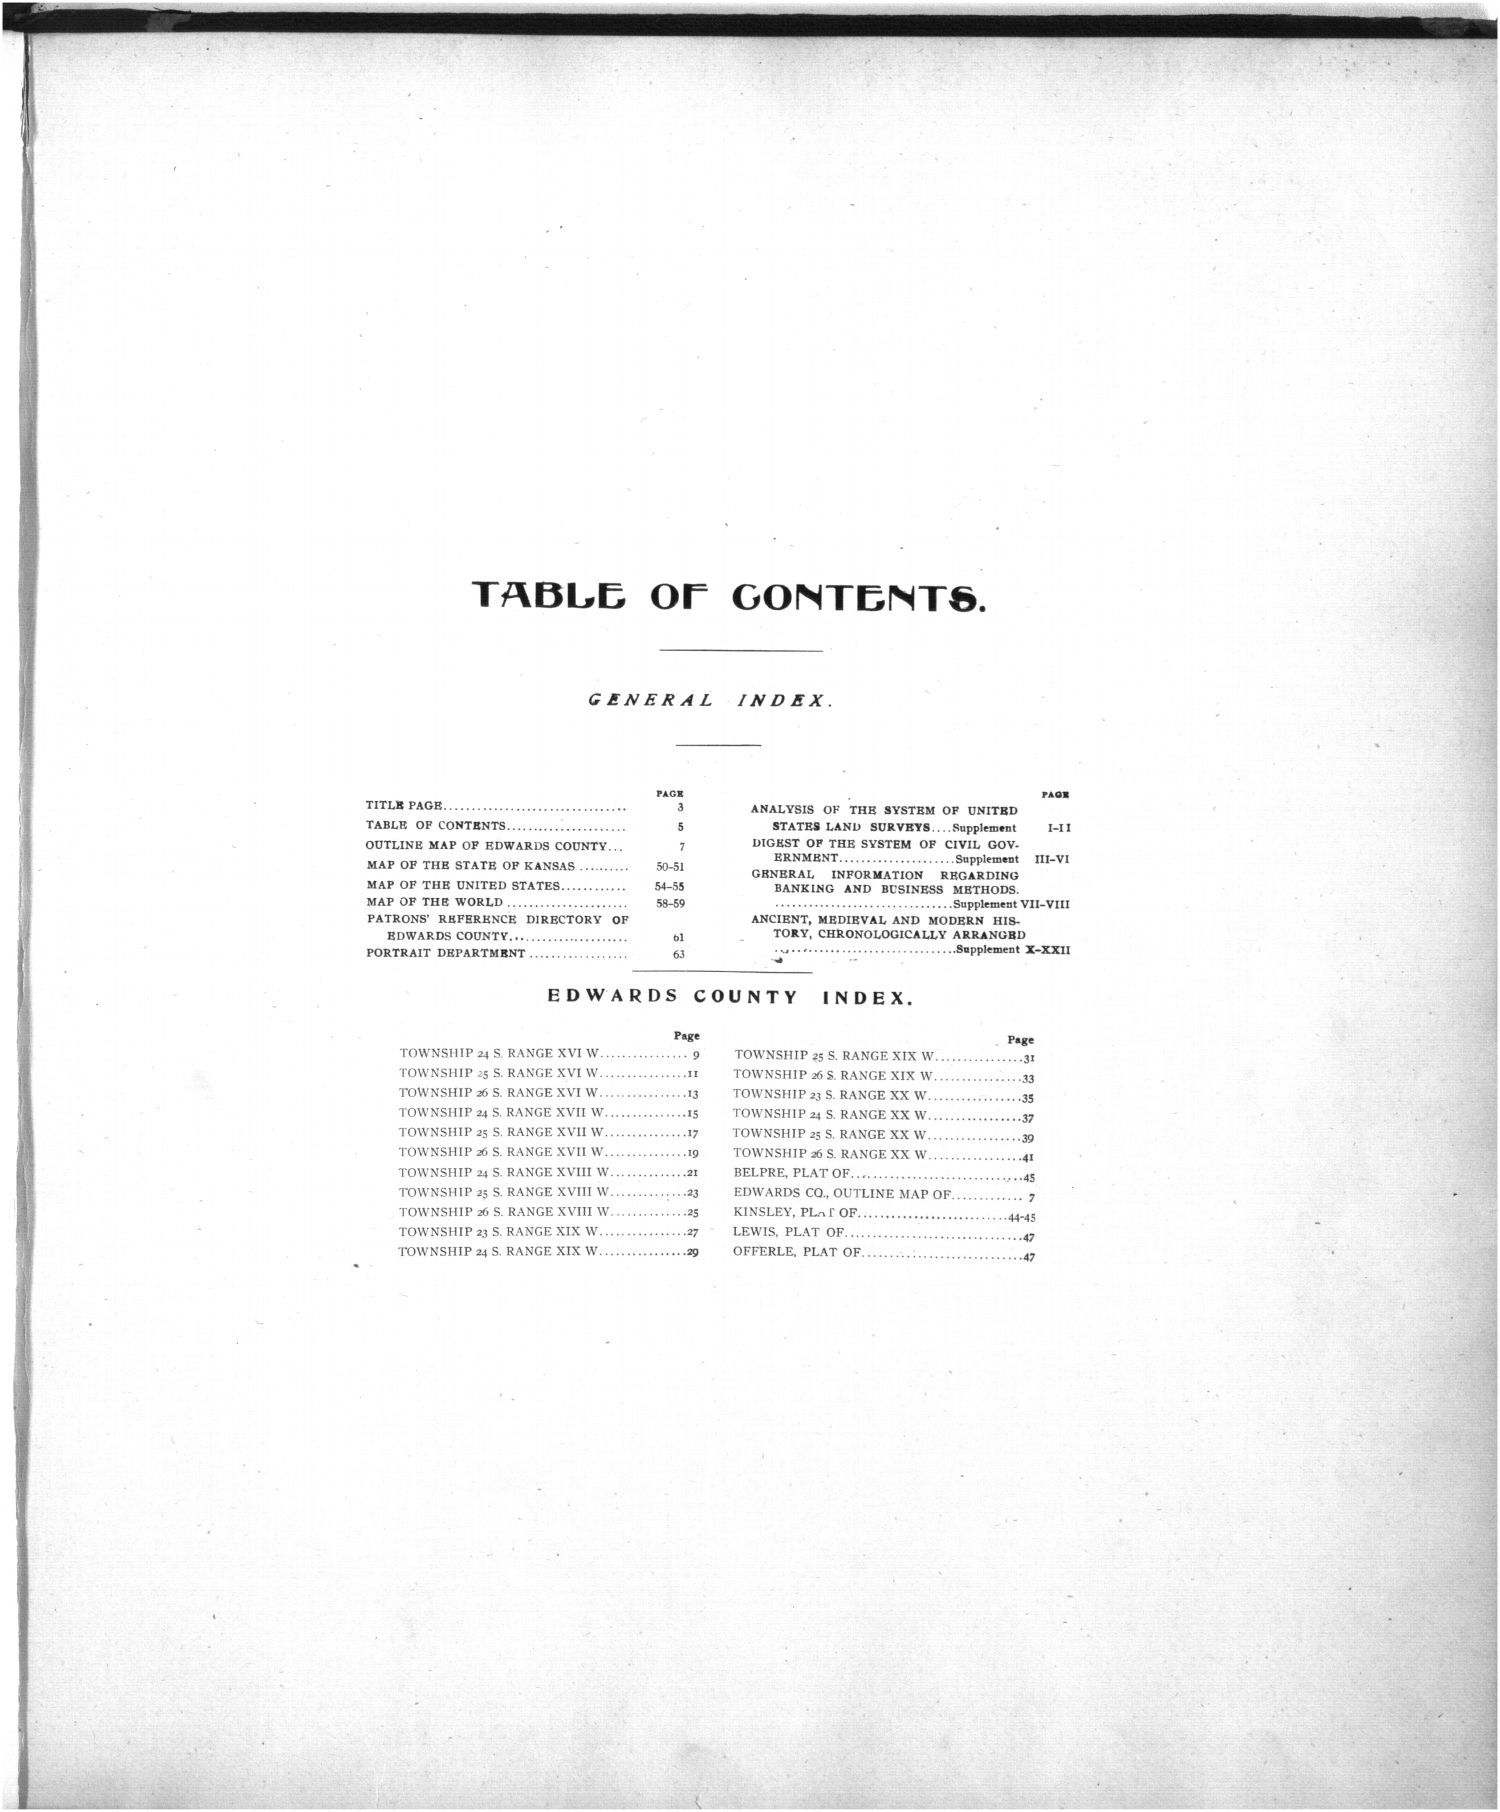 Standard atlas of Edwards County - Table of contents